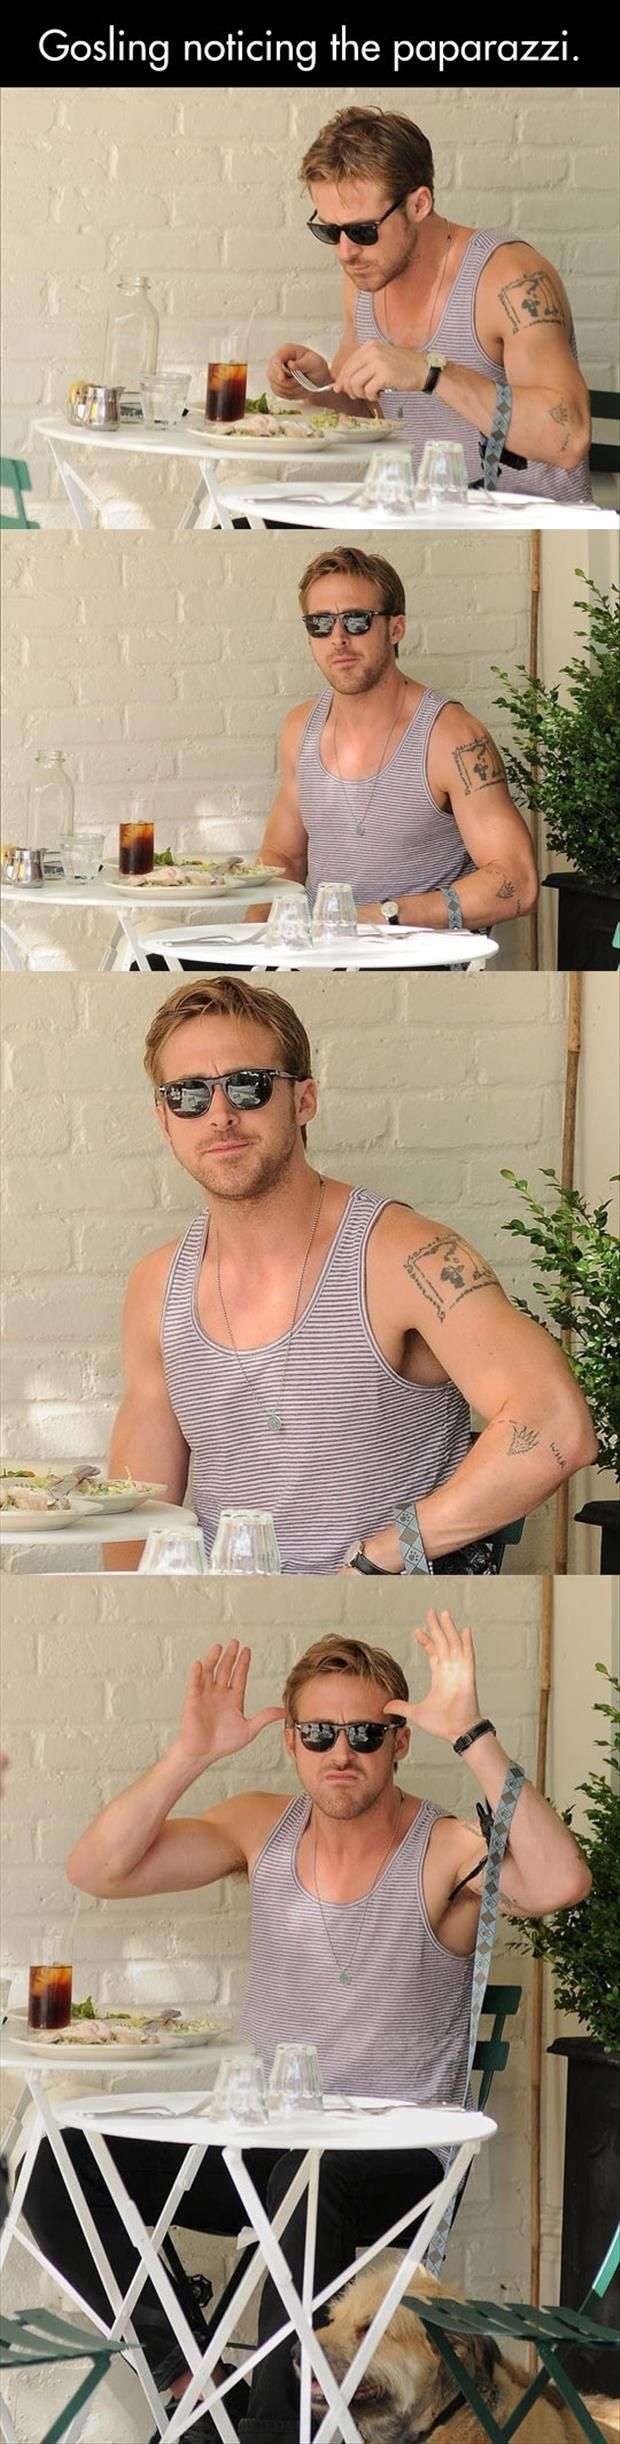 XD: Ryan Gosling, Giggle, Ryangosling, Funny Pictures, Gosling Noticing, He S Perfect